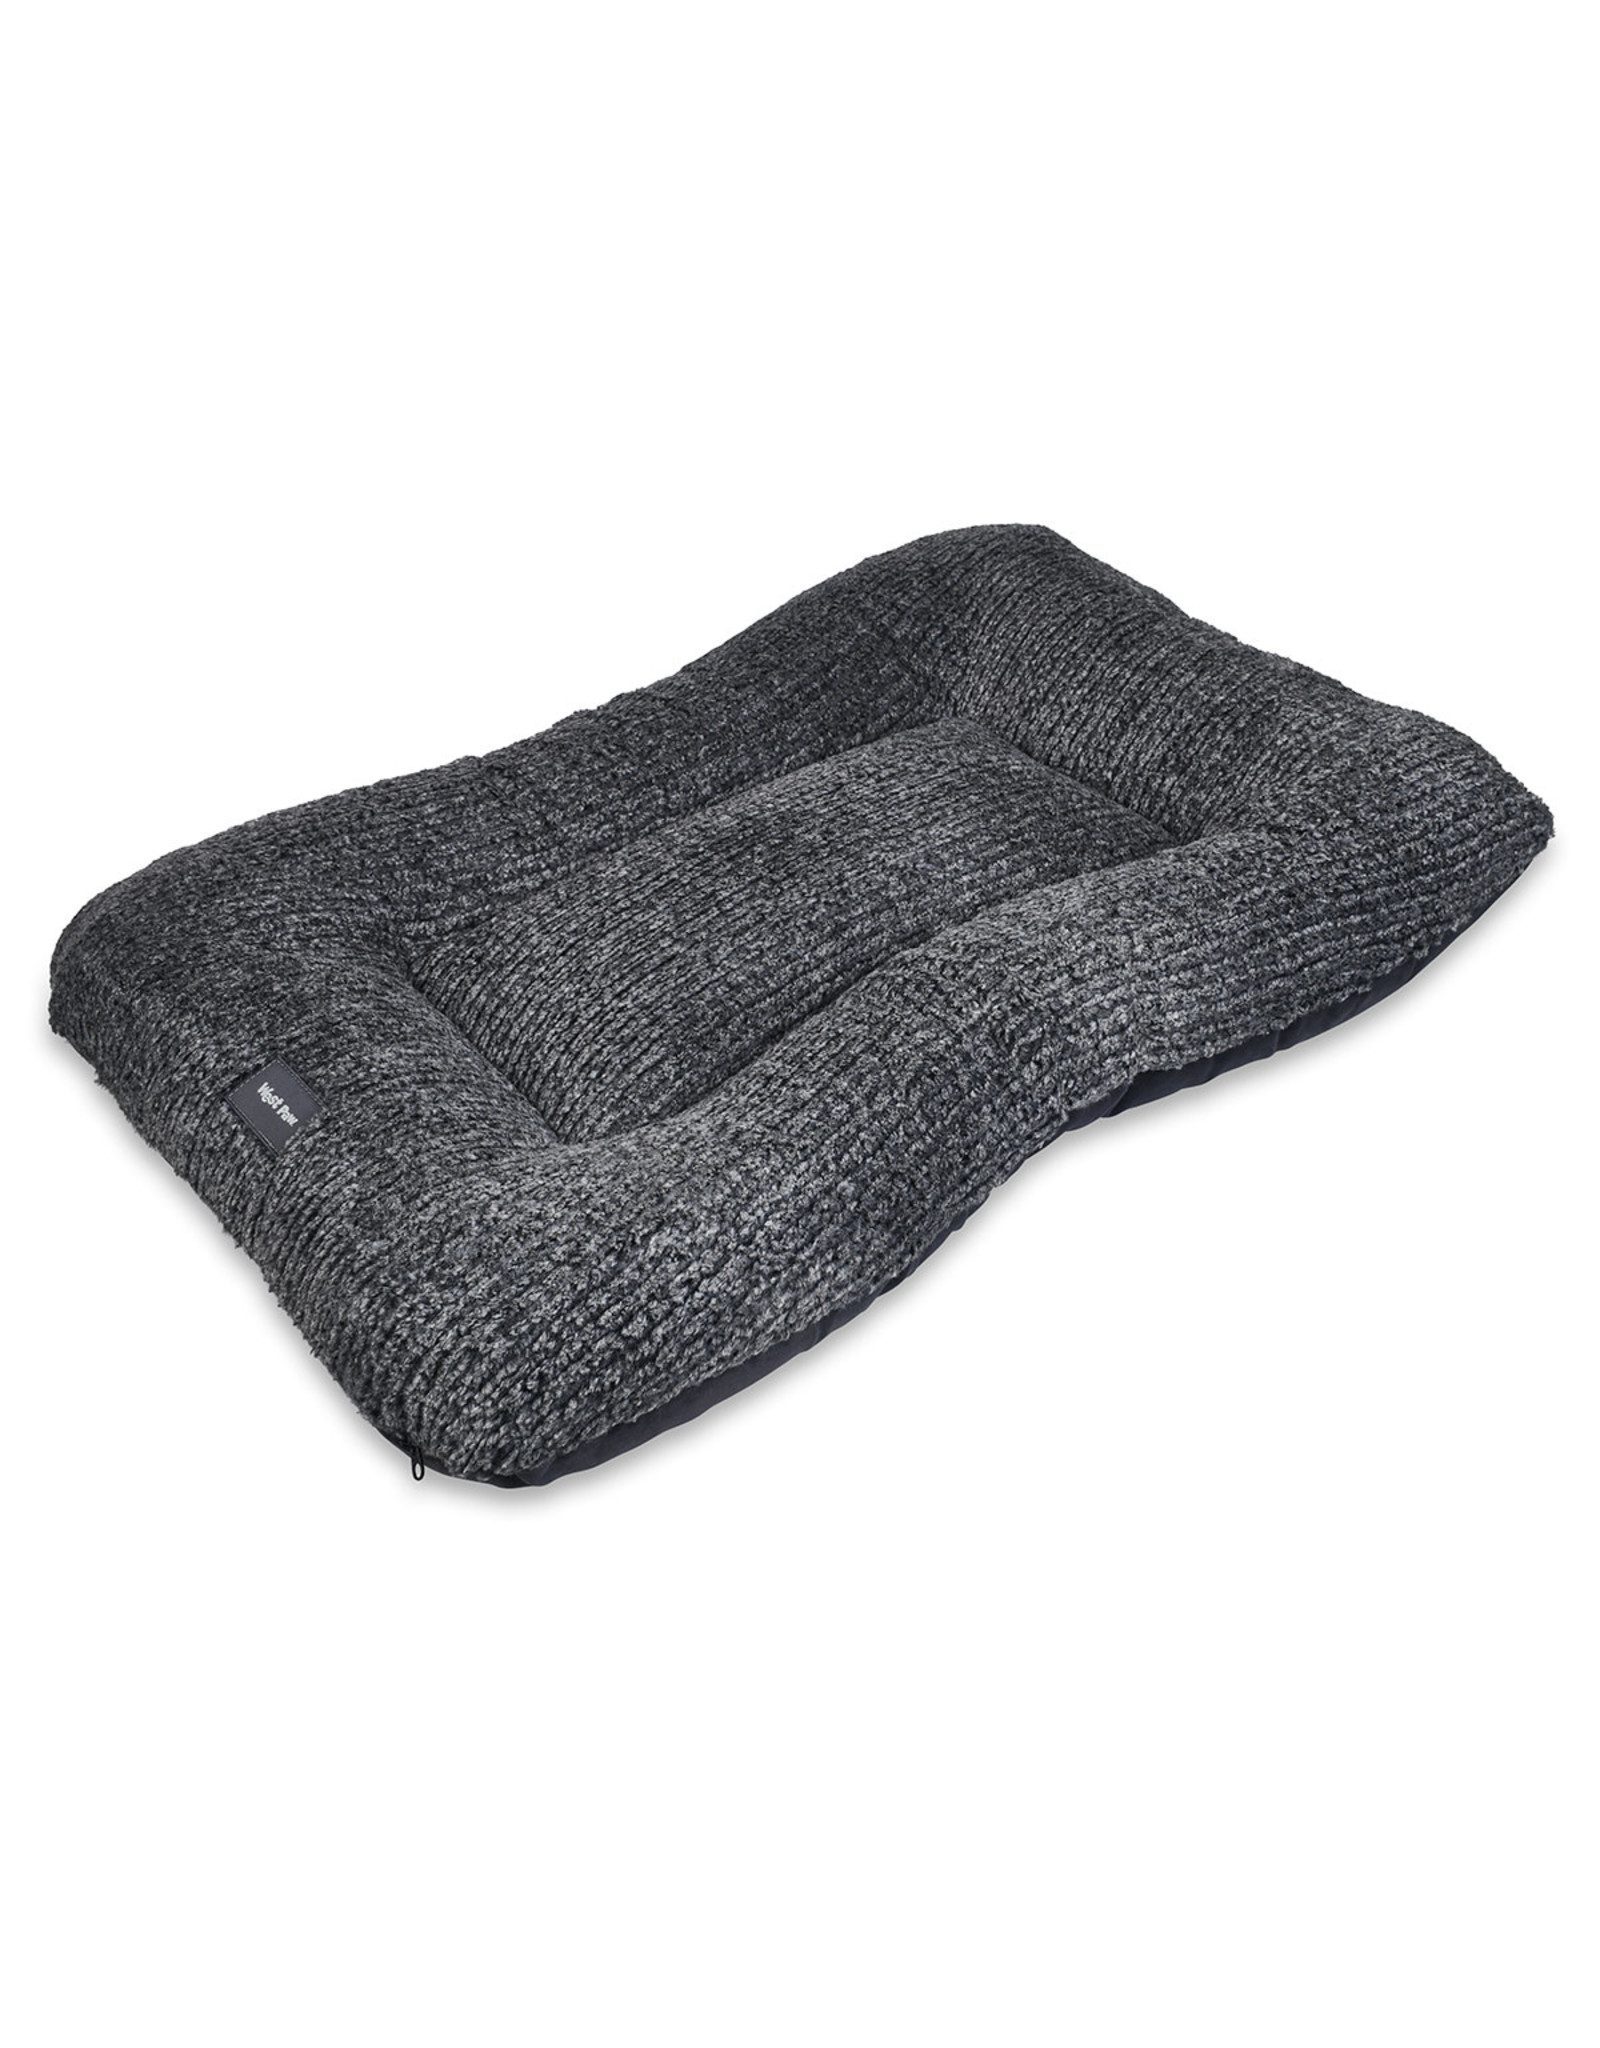 West Paw Designs Westpaw: Heyday Bed® - S 26x19 Boulder Heather